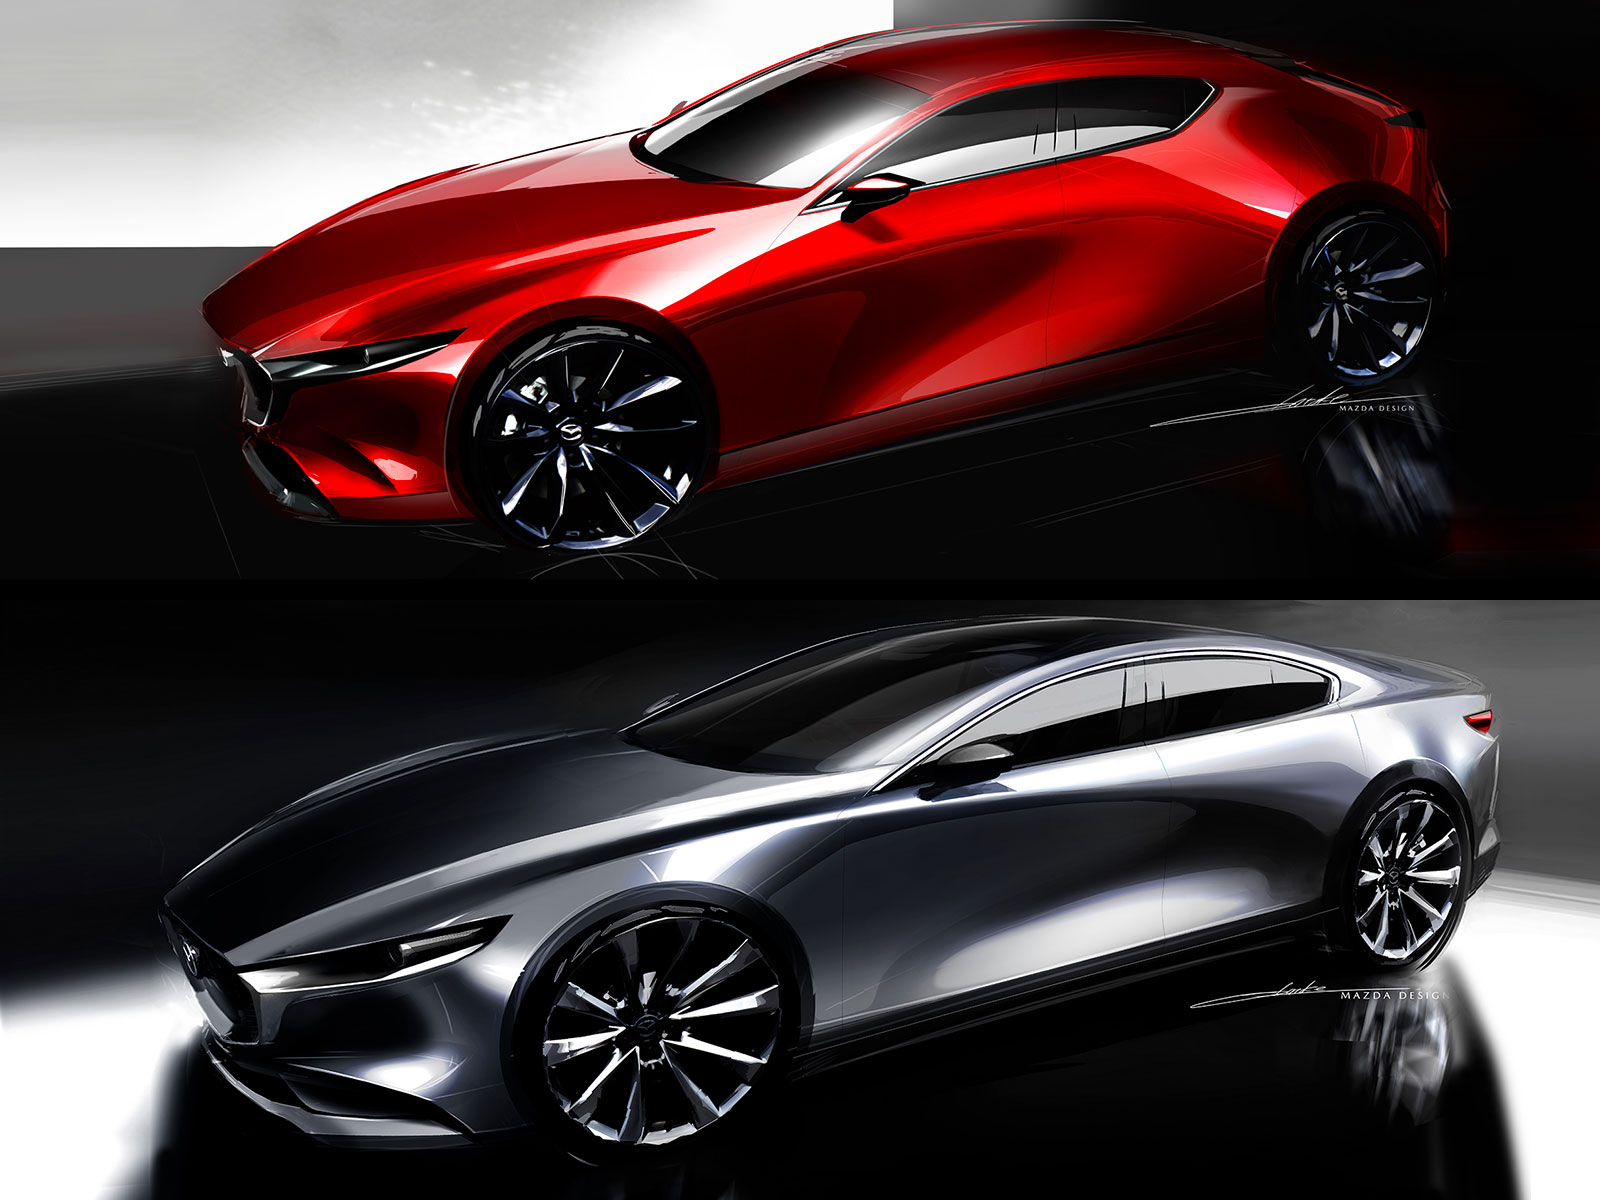 New Mazda3 Sedan and Hatchback Design Sketches